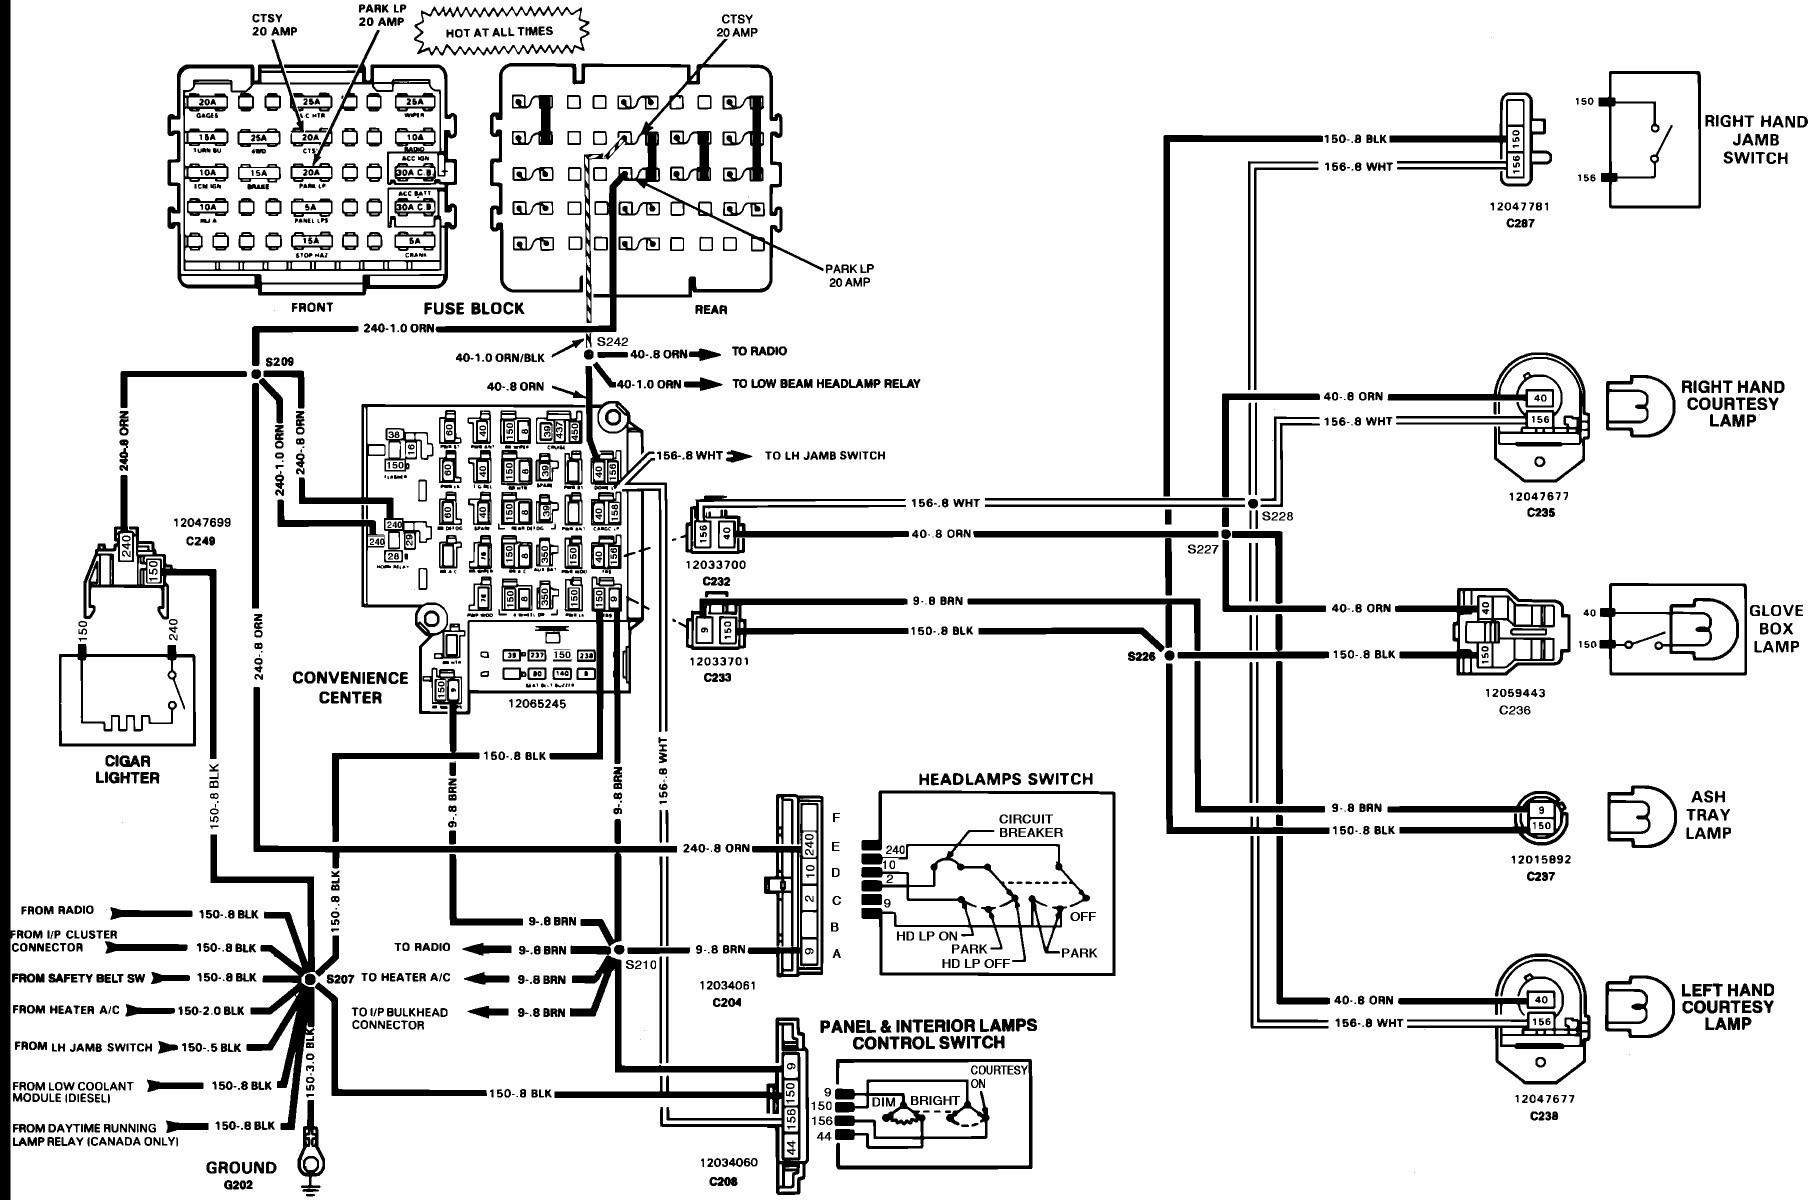 86 chevy steering column wiring diagram wiring library86 chevy steering column wiring diagram